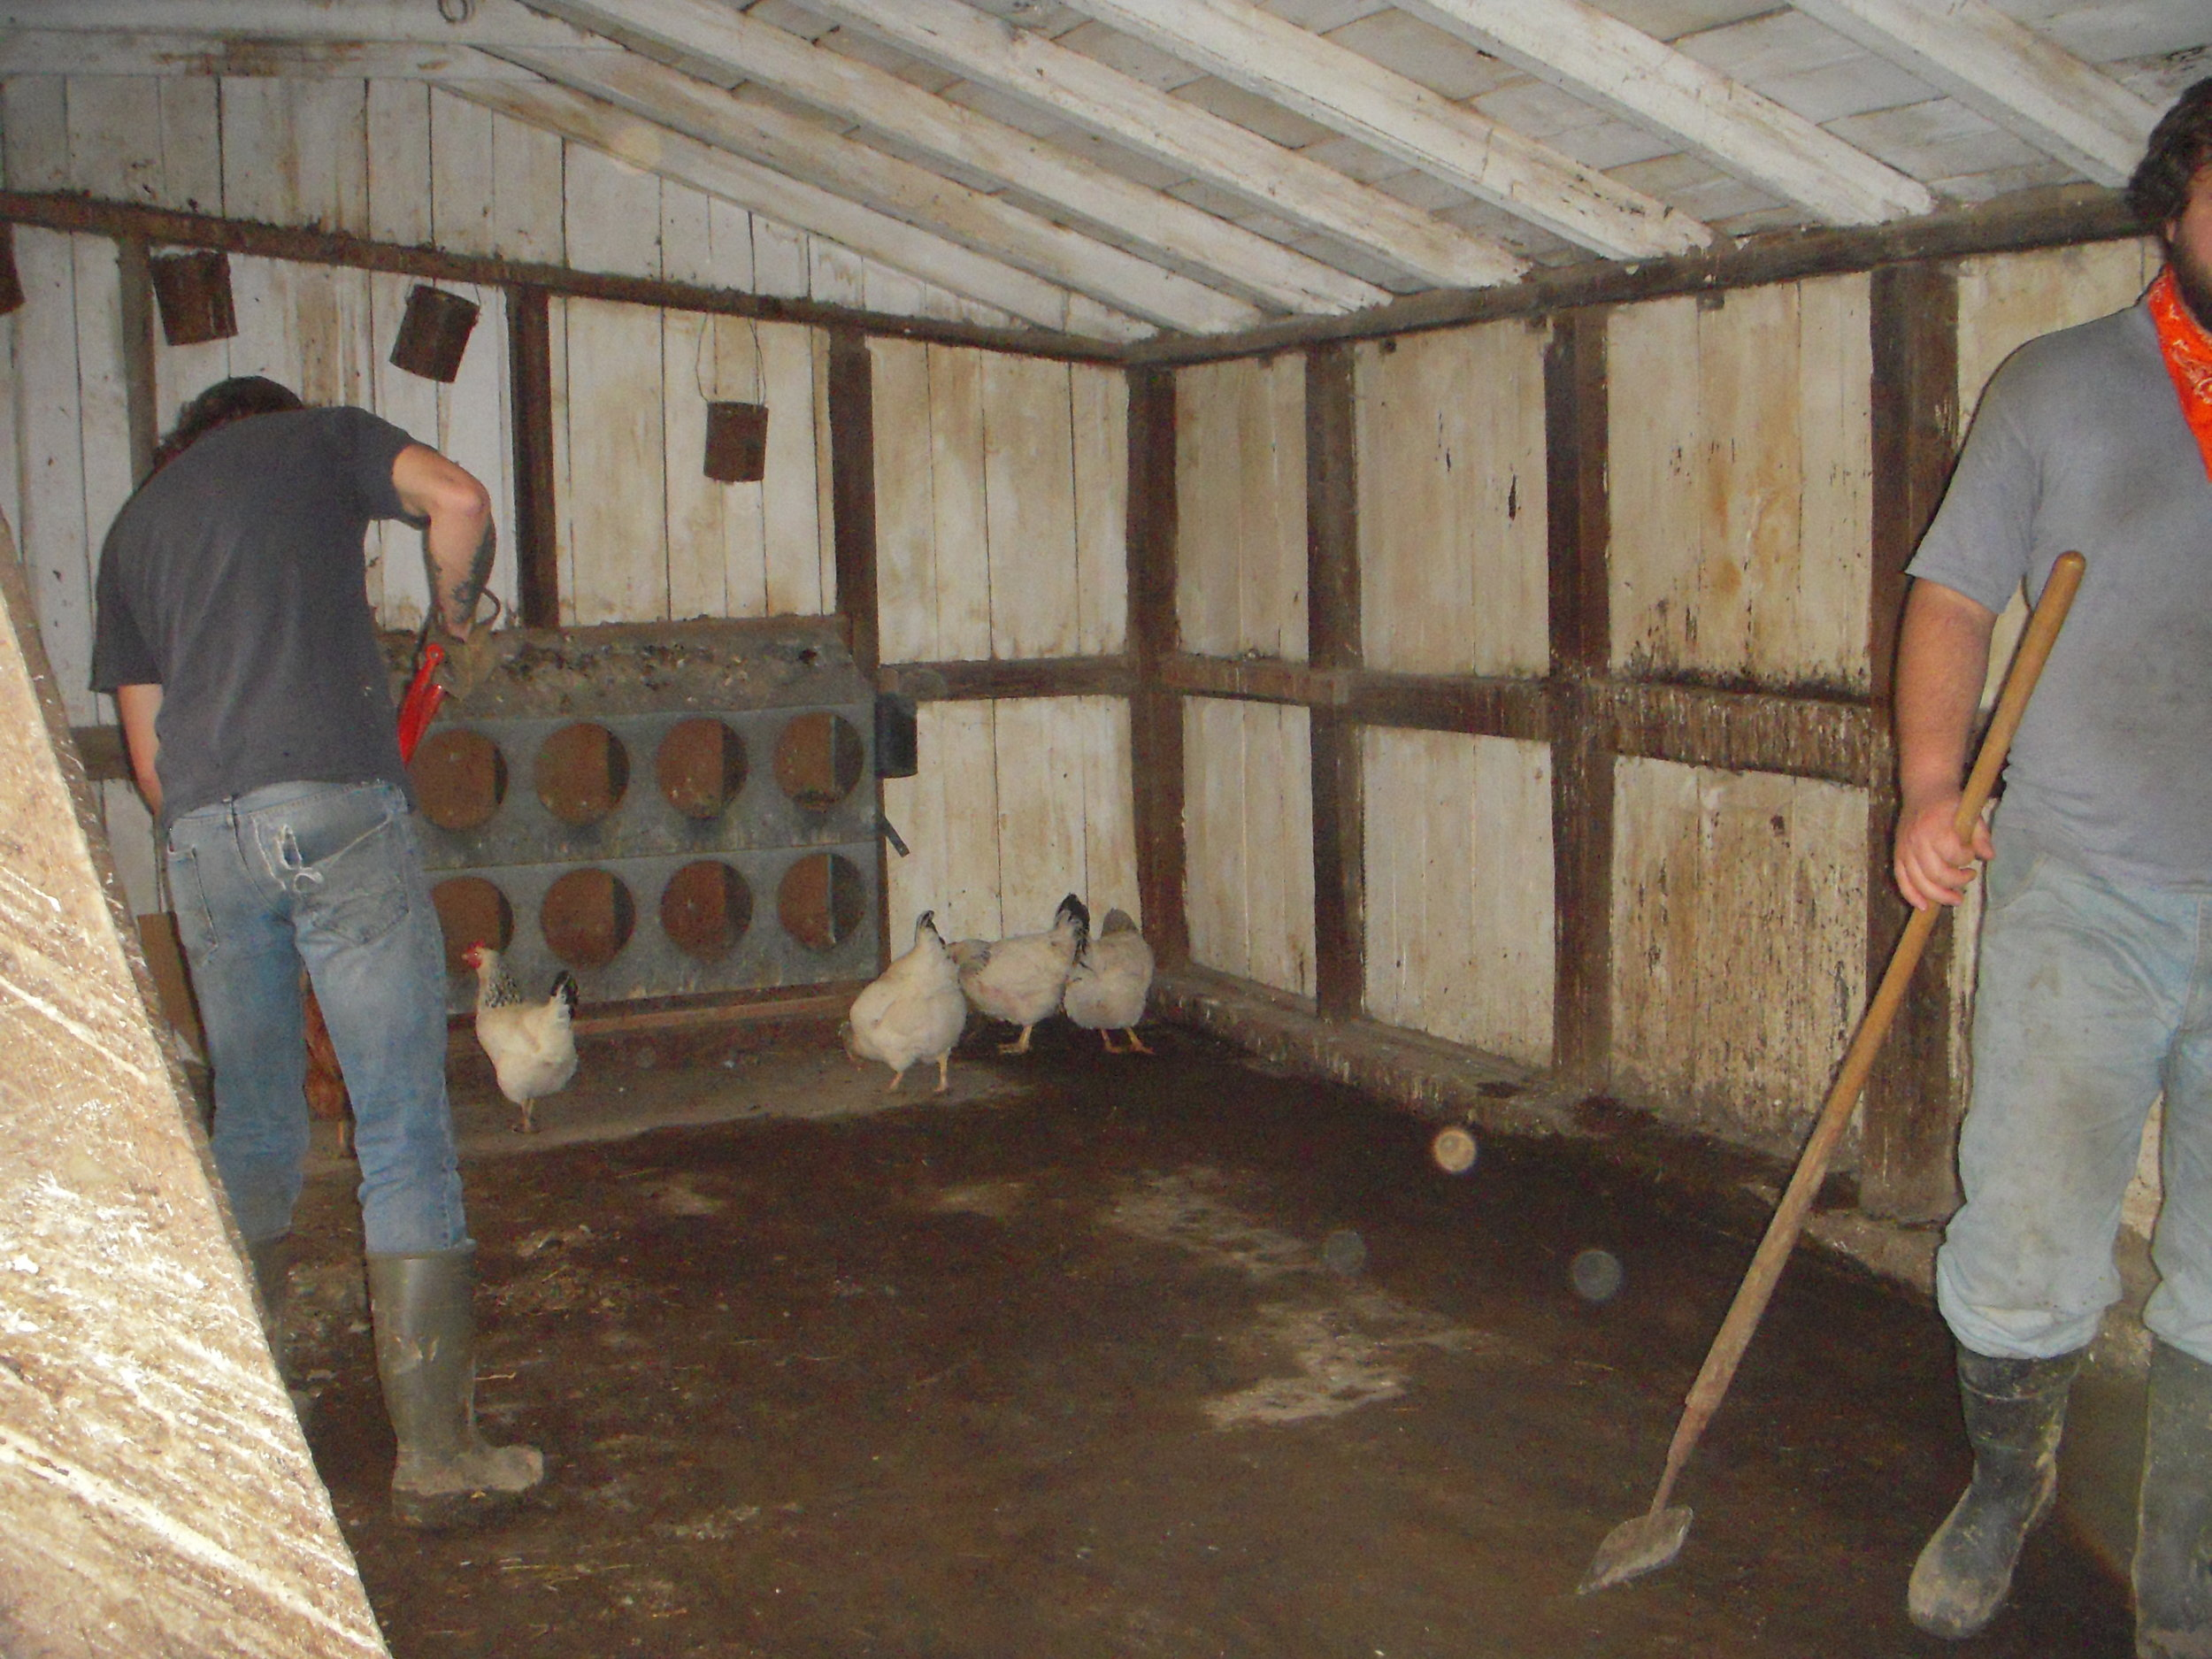 The hen house gets a thorough cleaning.